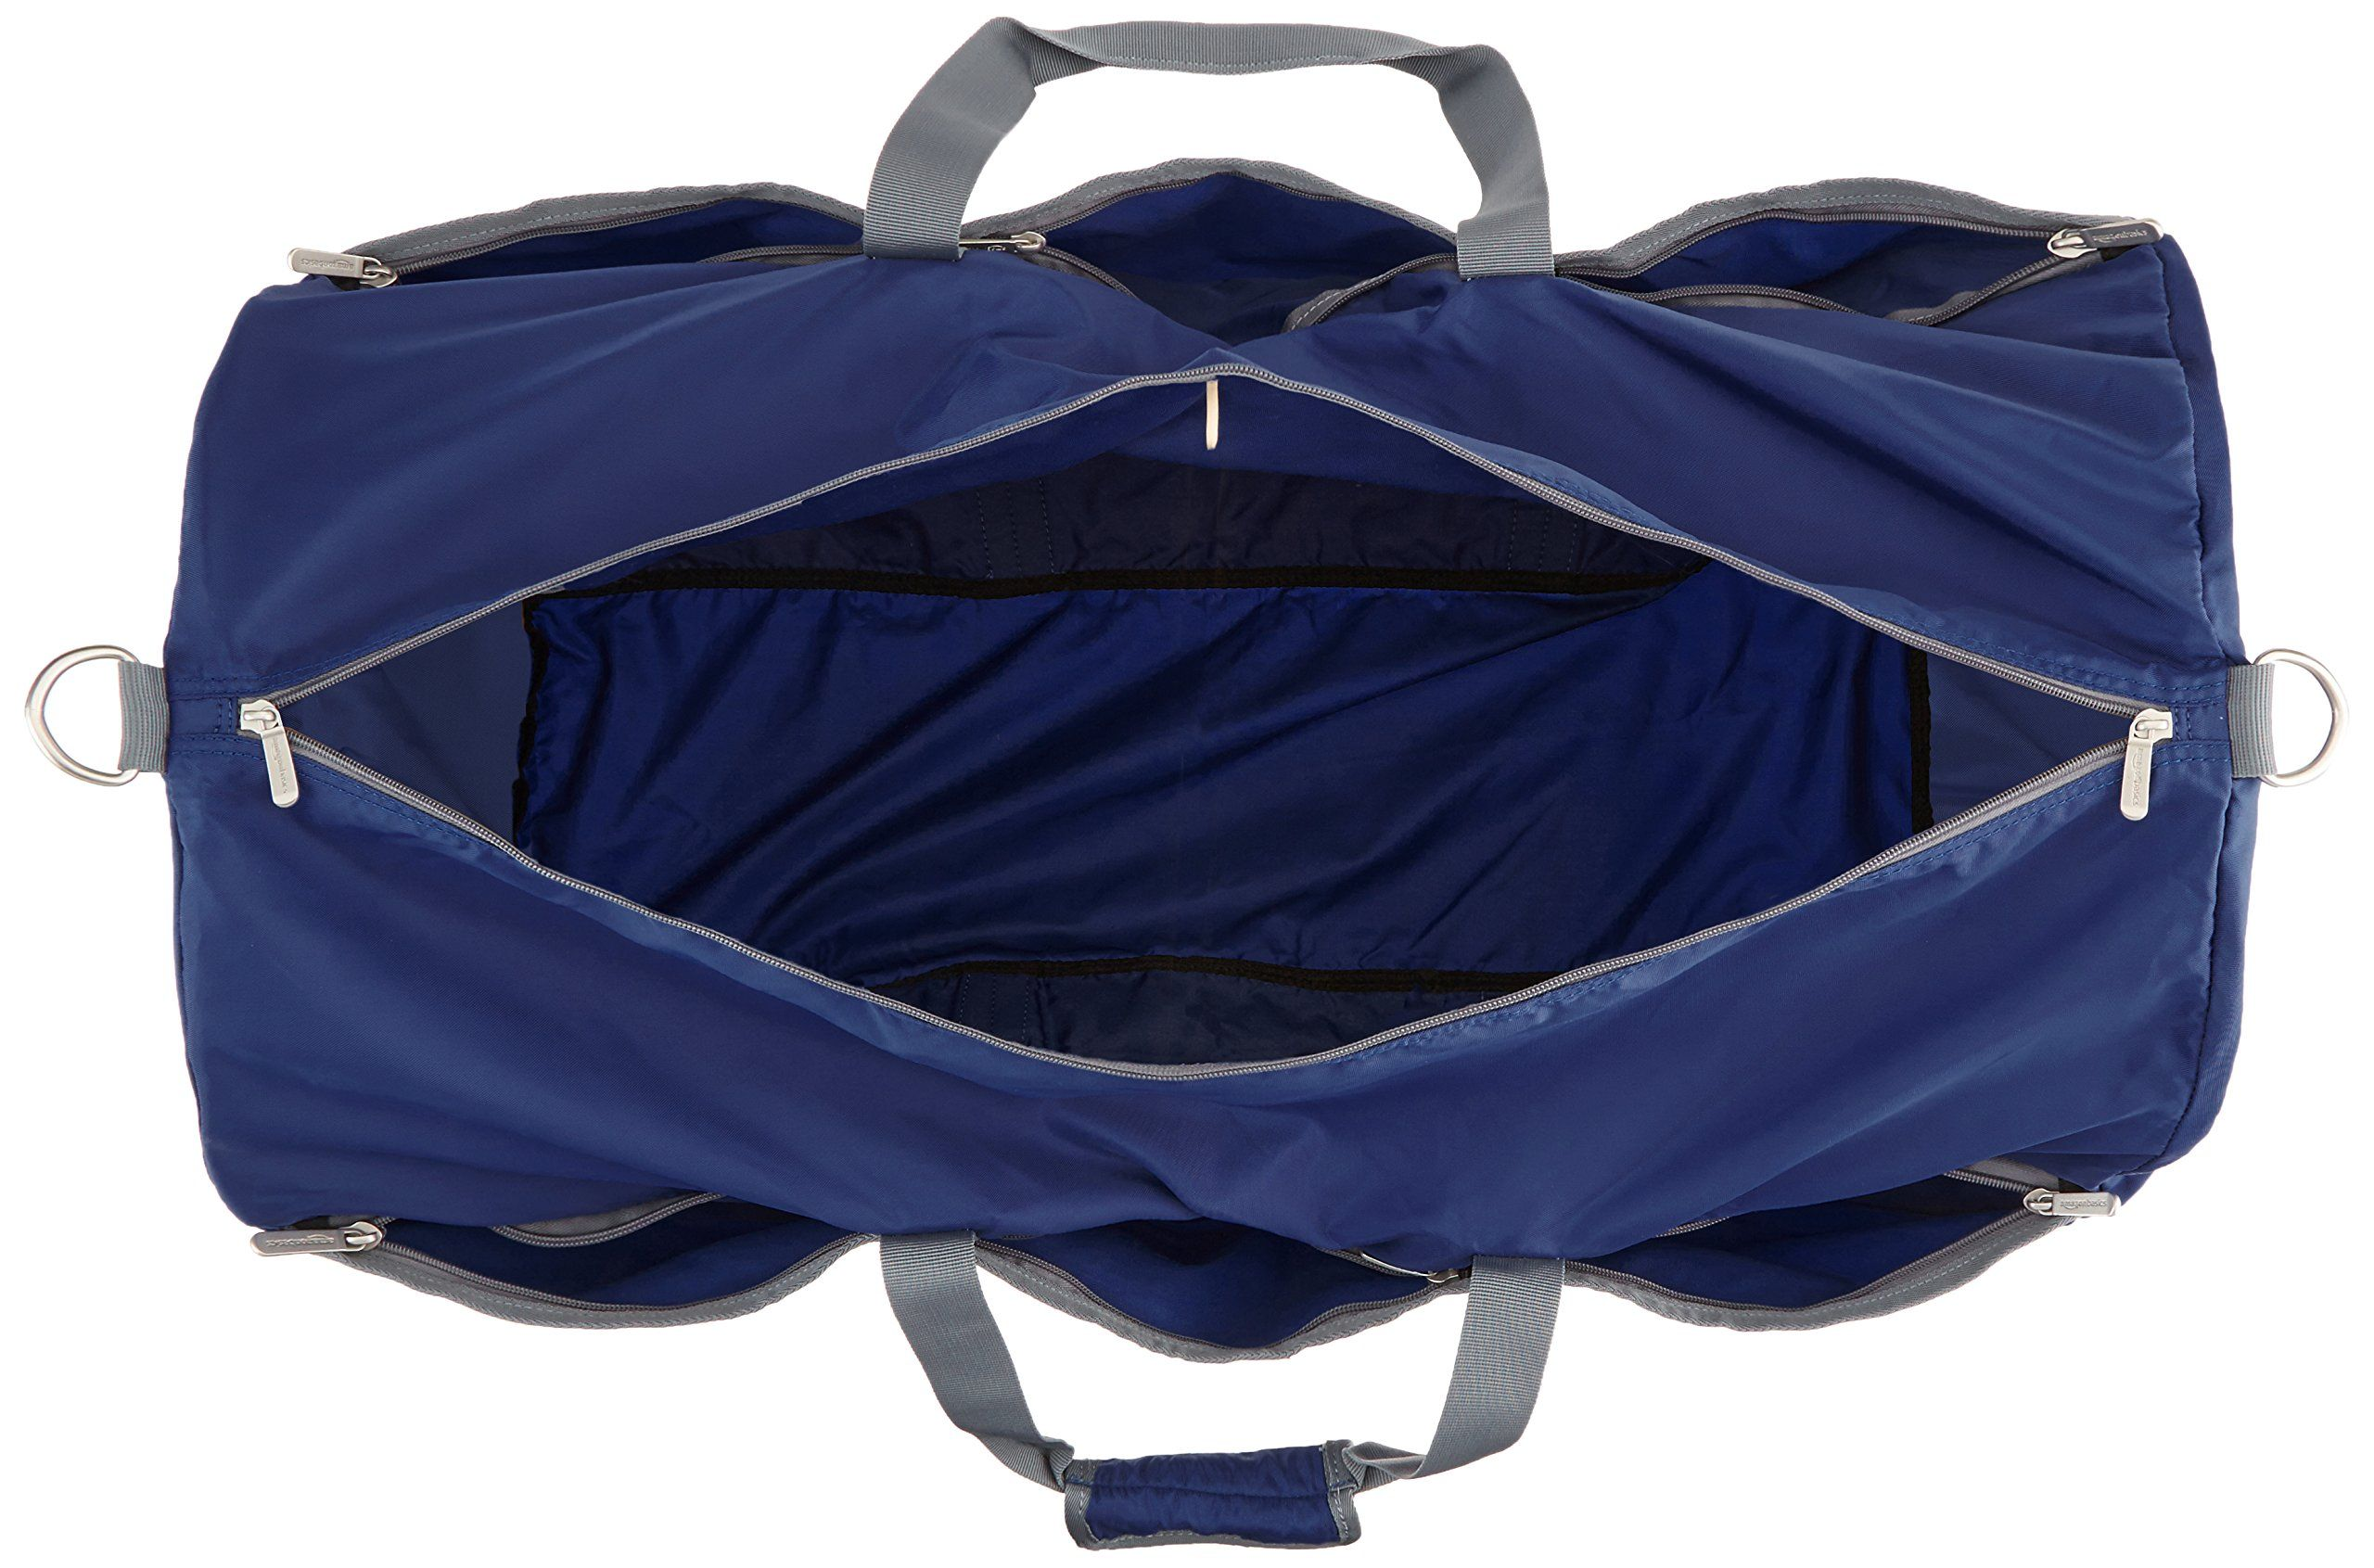 f281e3b26f60 AmazonBasics Large Duffel Bag Navy Blue   You can get more details by  clicking on the